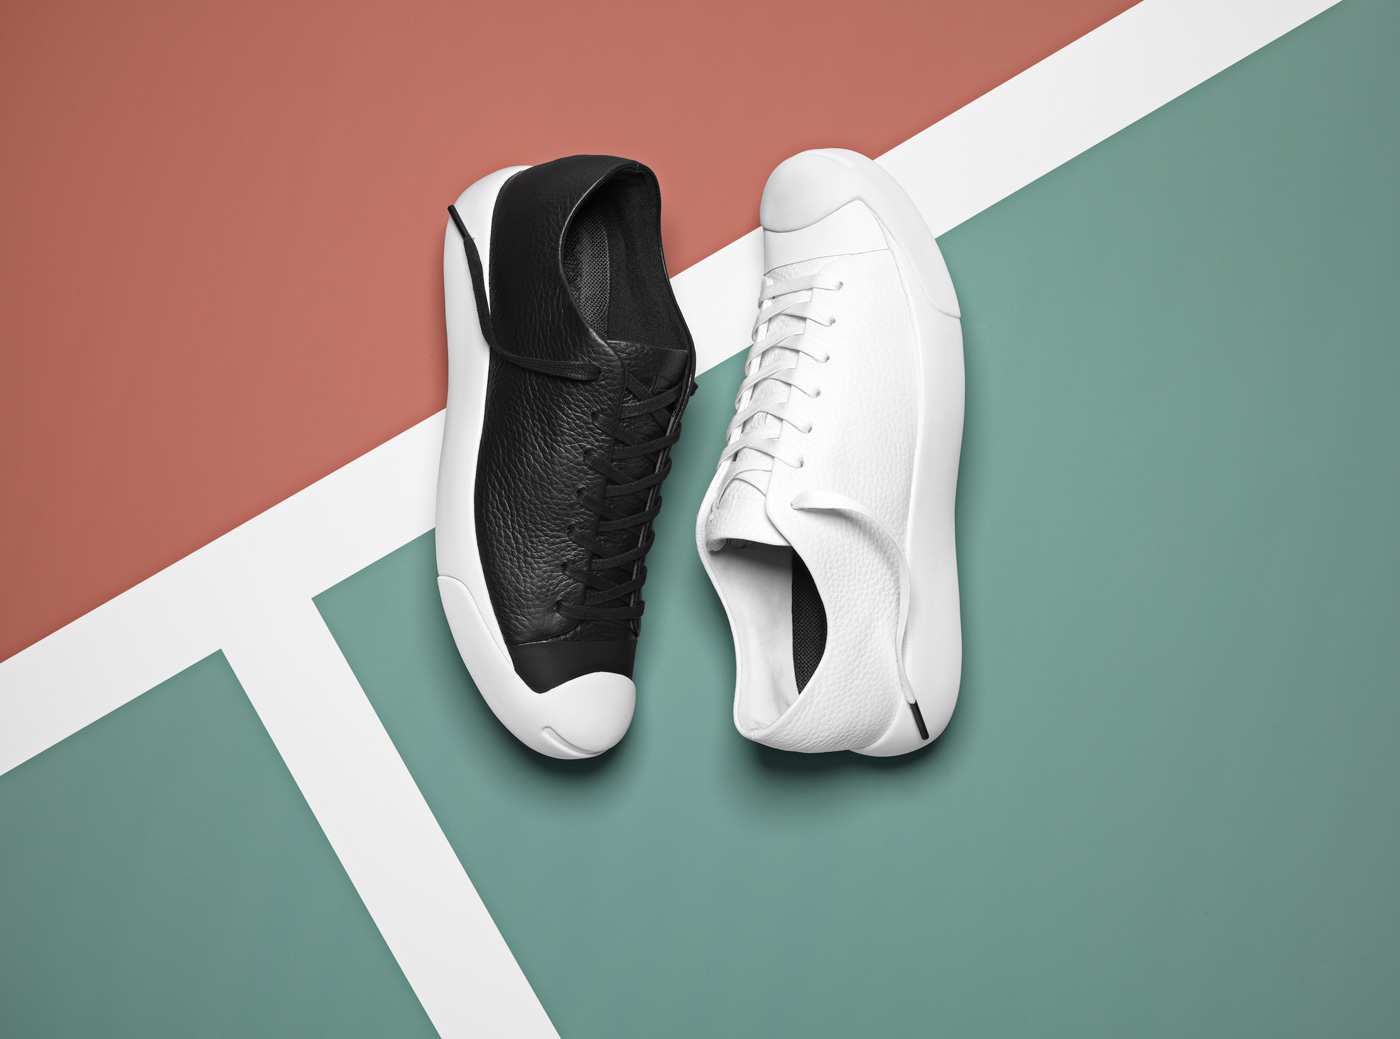 Converse-Jack-Purcell-Modern-Leather-Group-NTD-4,680-(3)